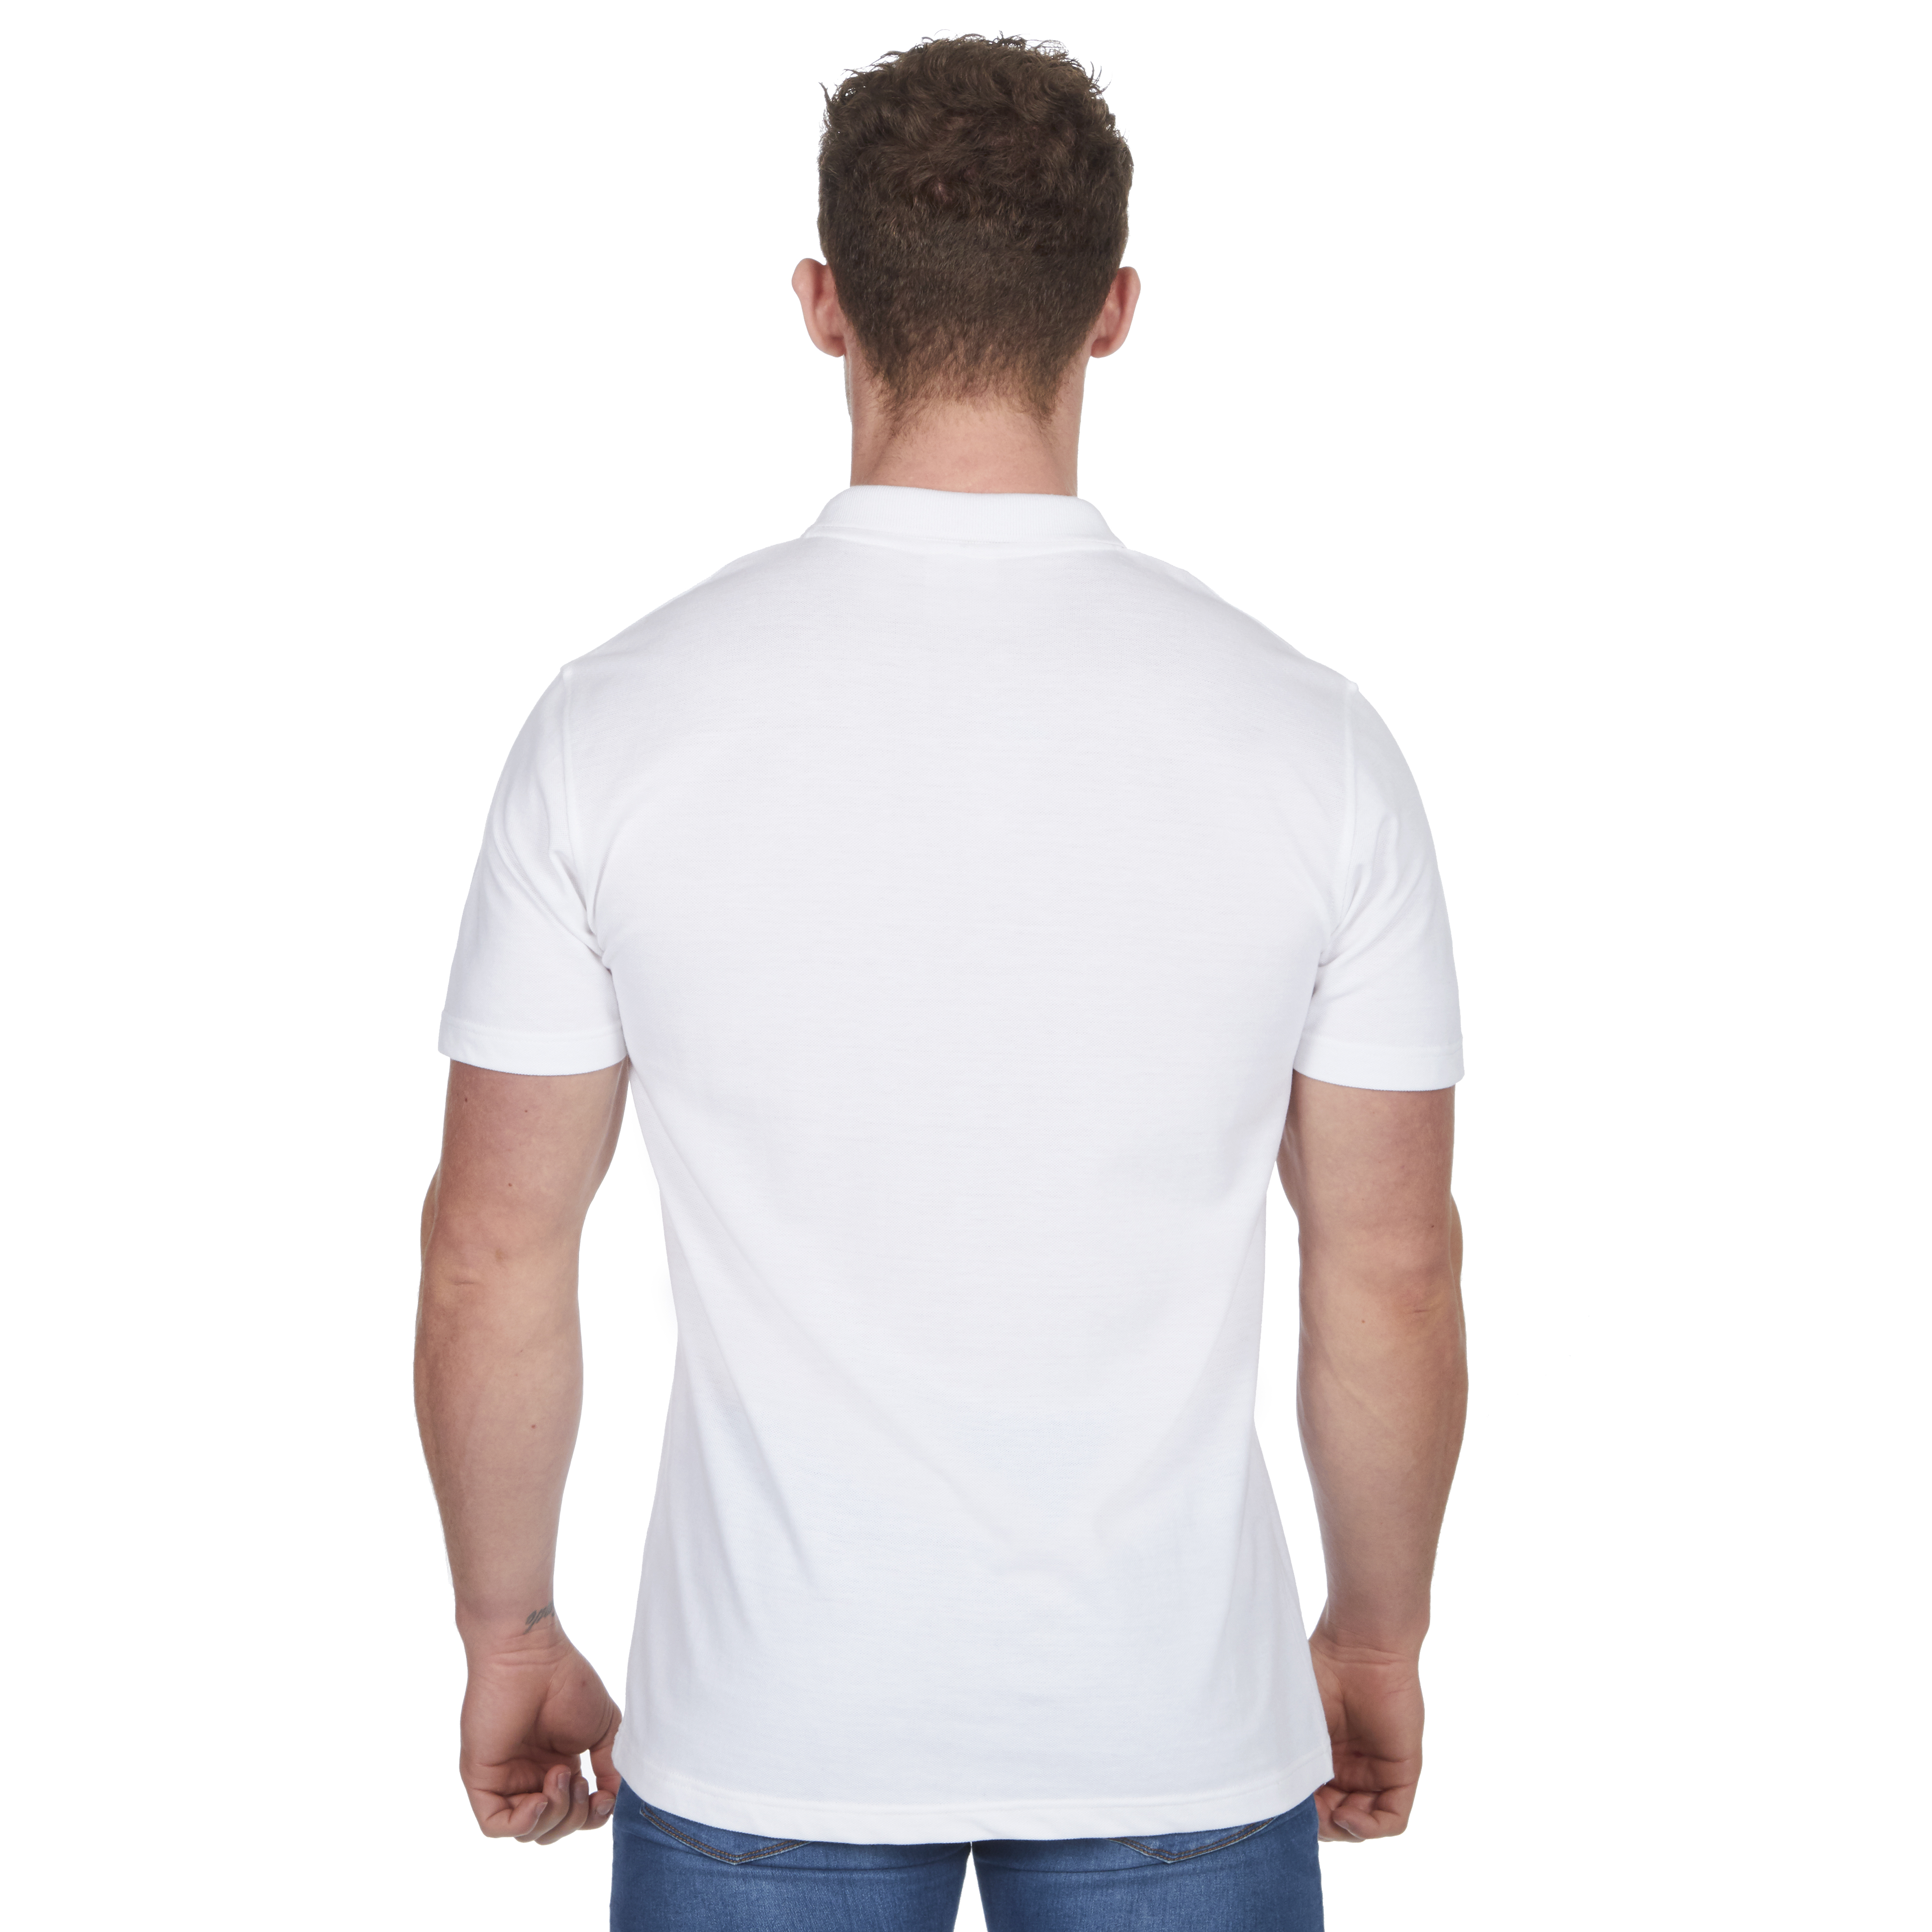 Mens-Classic-Polo-Top-Plus-Size-T-Shirt-Plain-Shirt-Big-And-Tall-Short-Sleeve thumbnail 35